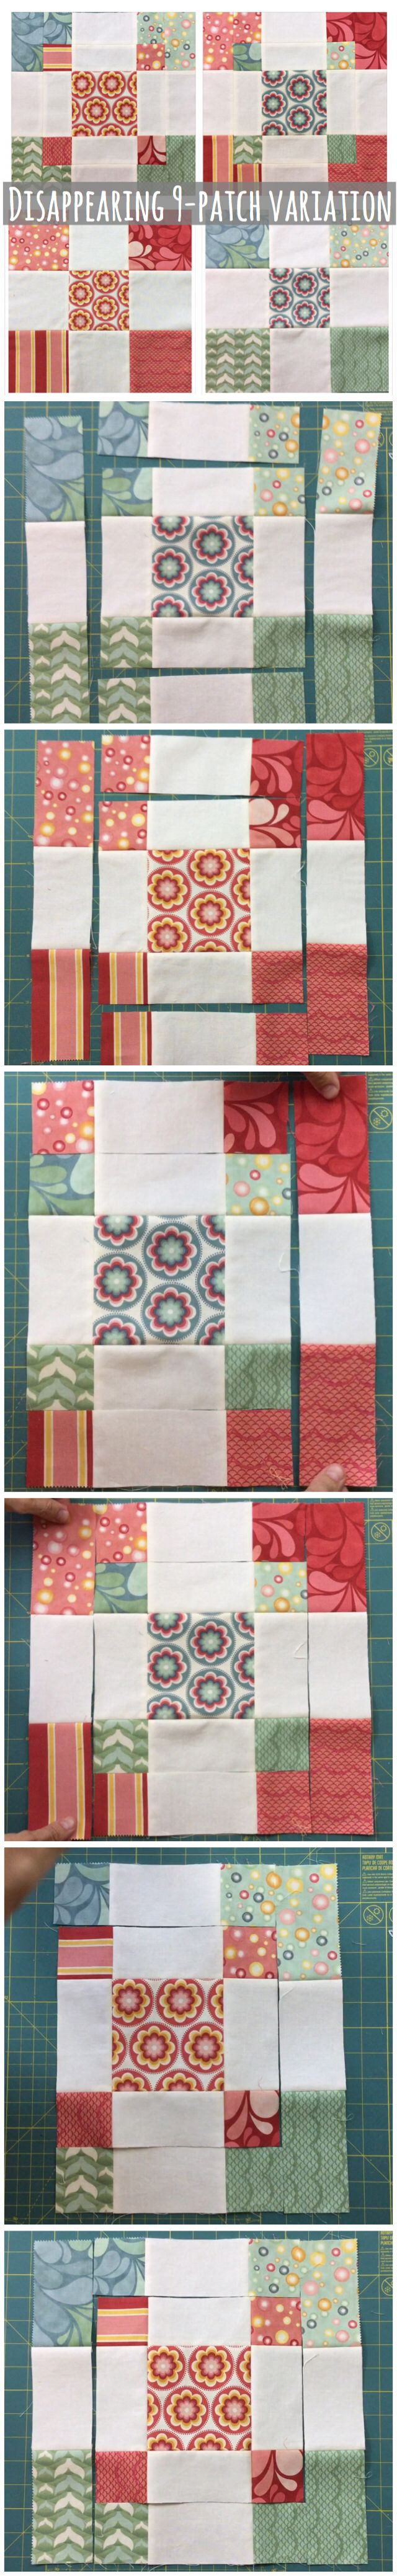 This is one of the two finished blocks you can make with this tutorial. Learn how to make this block in less than 2 minutes This is a very short video that shows you how to cut your blocks and arra...